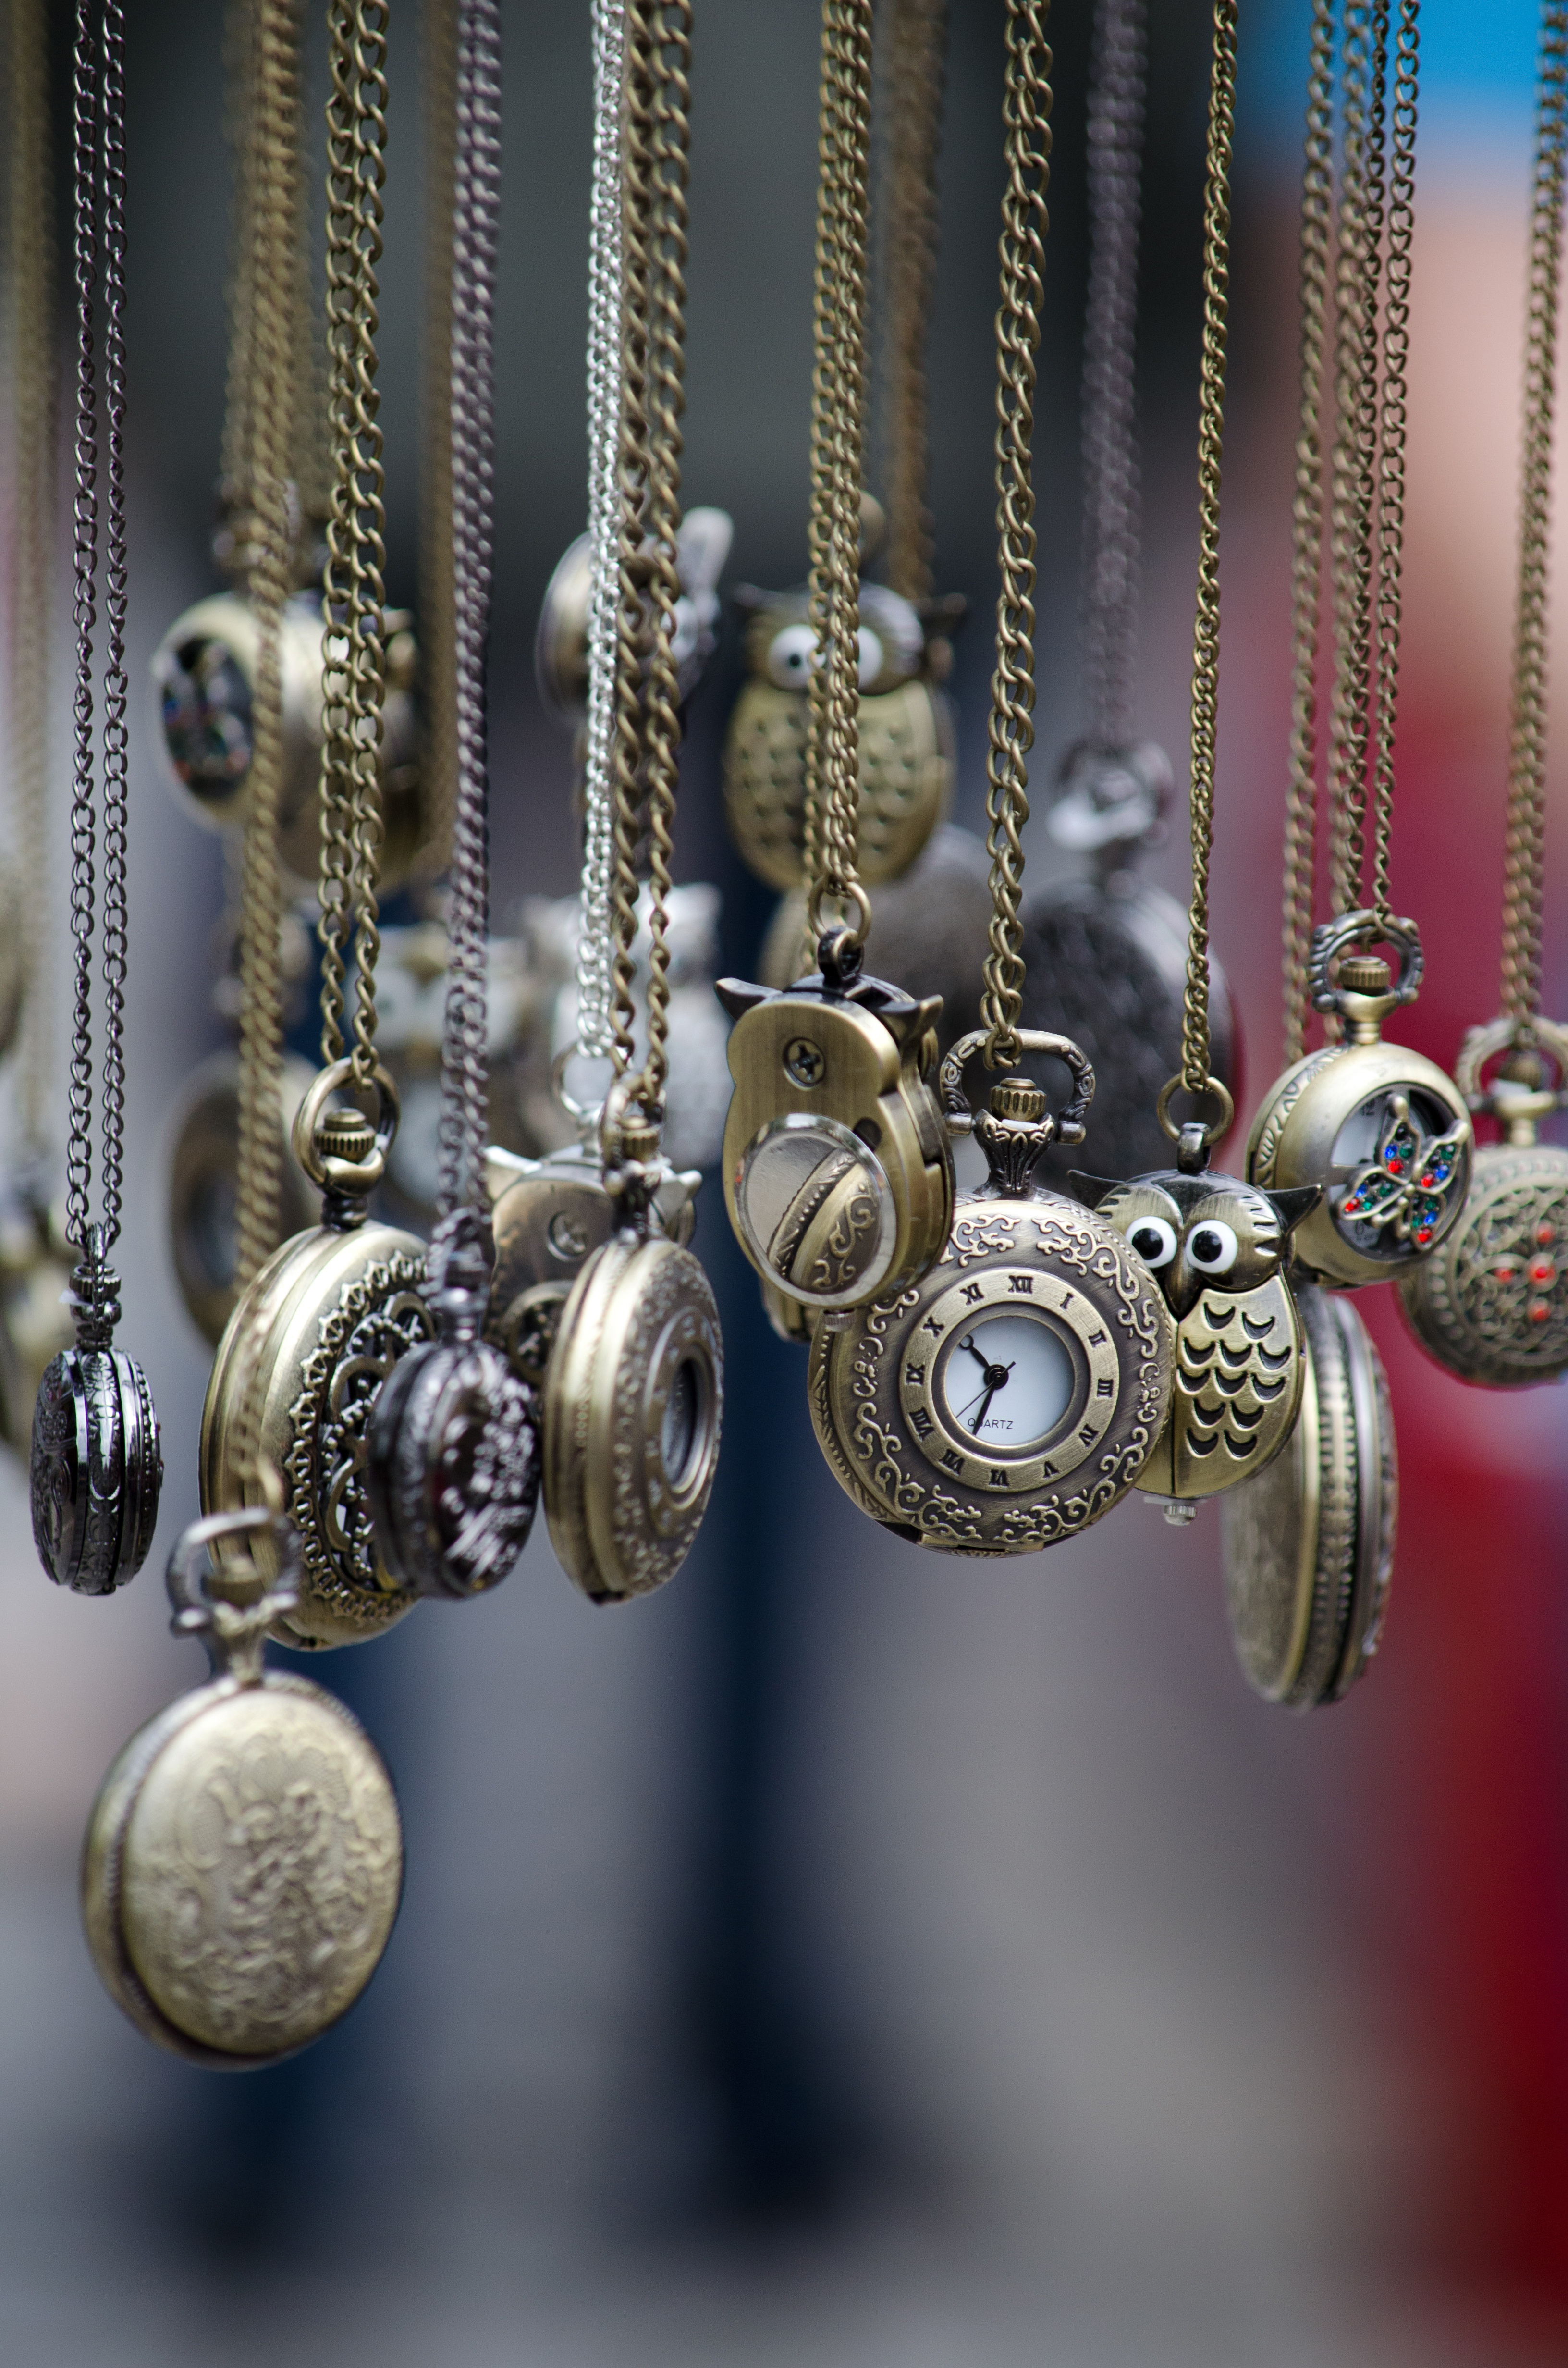 pocket watches, time of, chain, metal,